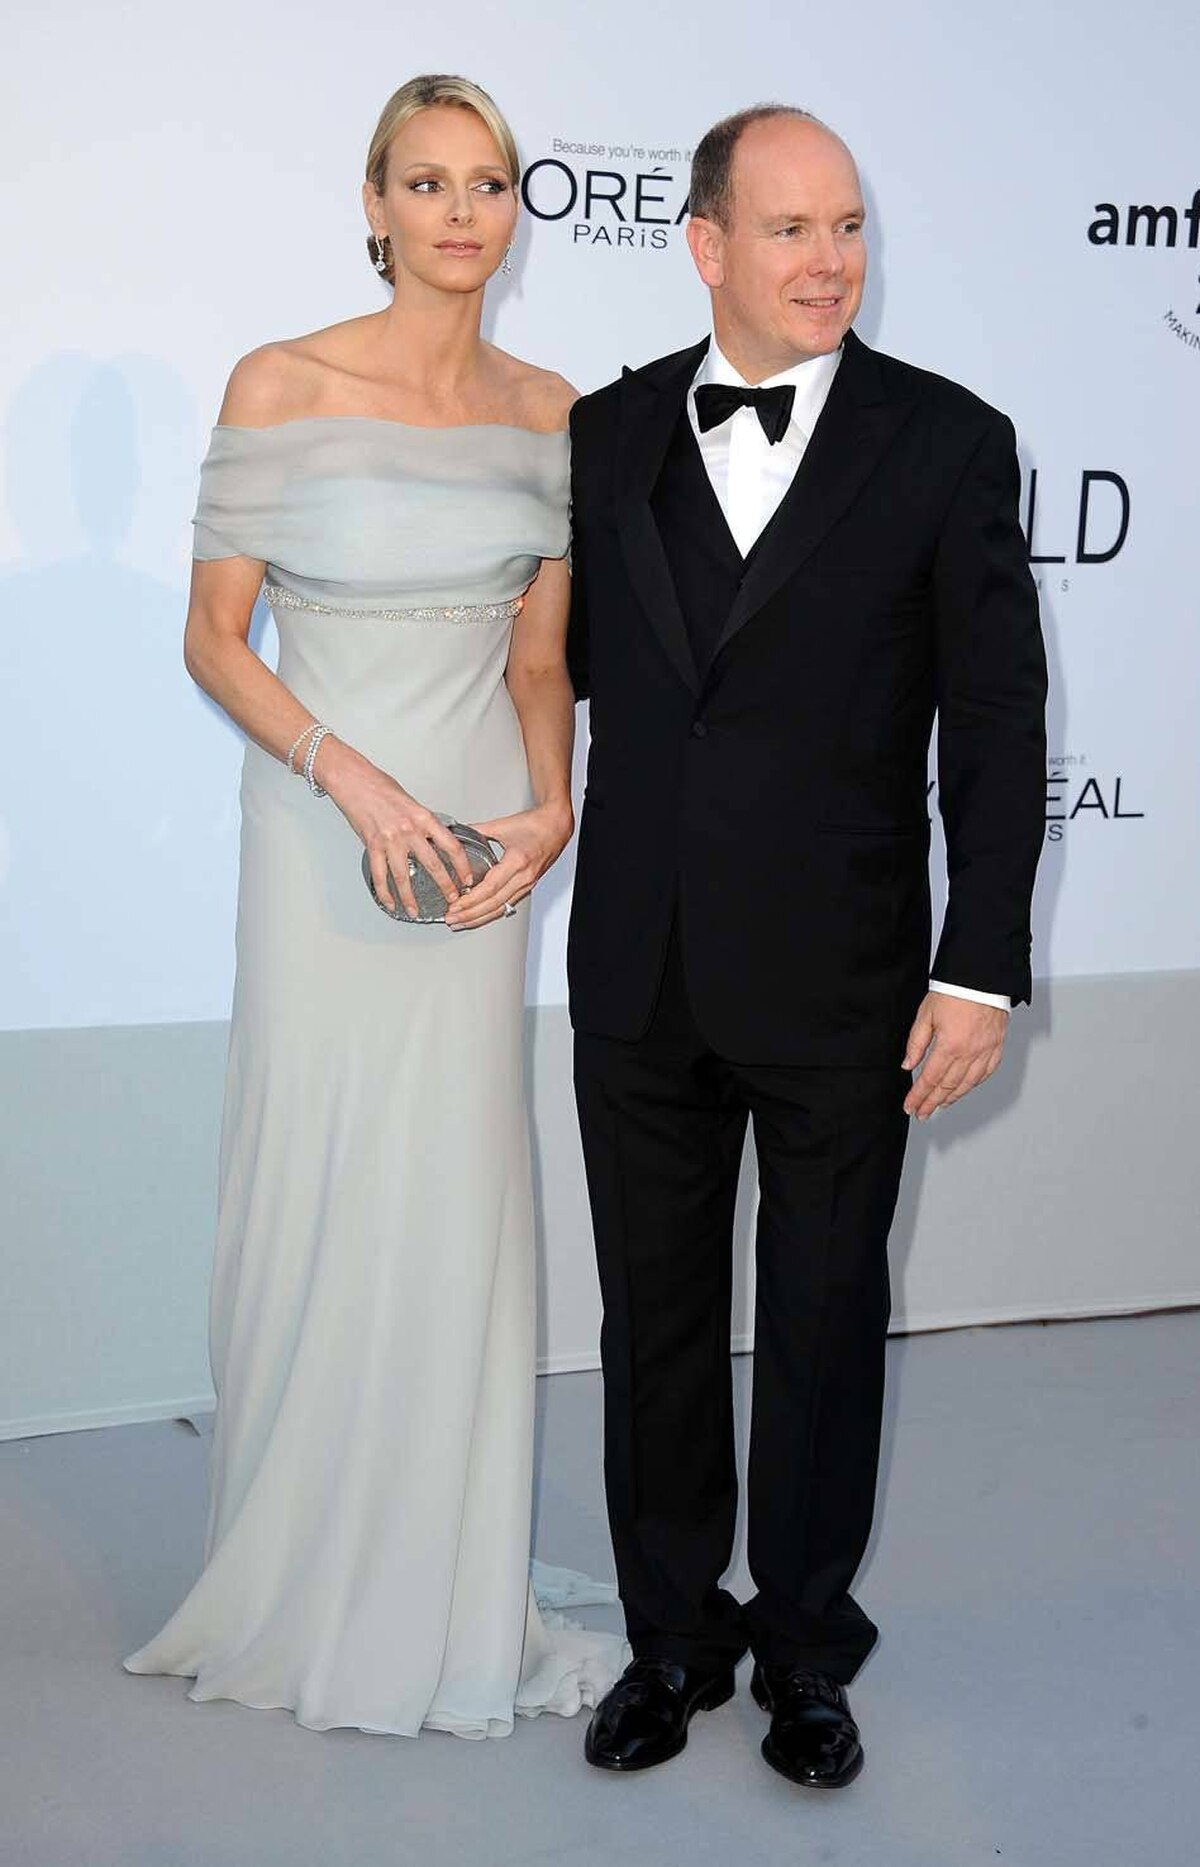 Charlene Wittstock and Prince Albert II of Monaco attend amfAR's Cinema Against AIDS Gala at the Cannes Film Festival on Thursday.